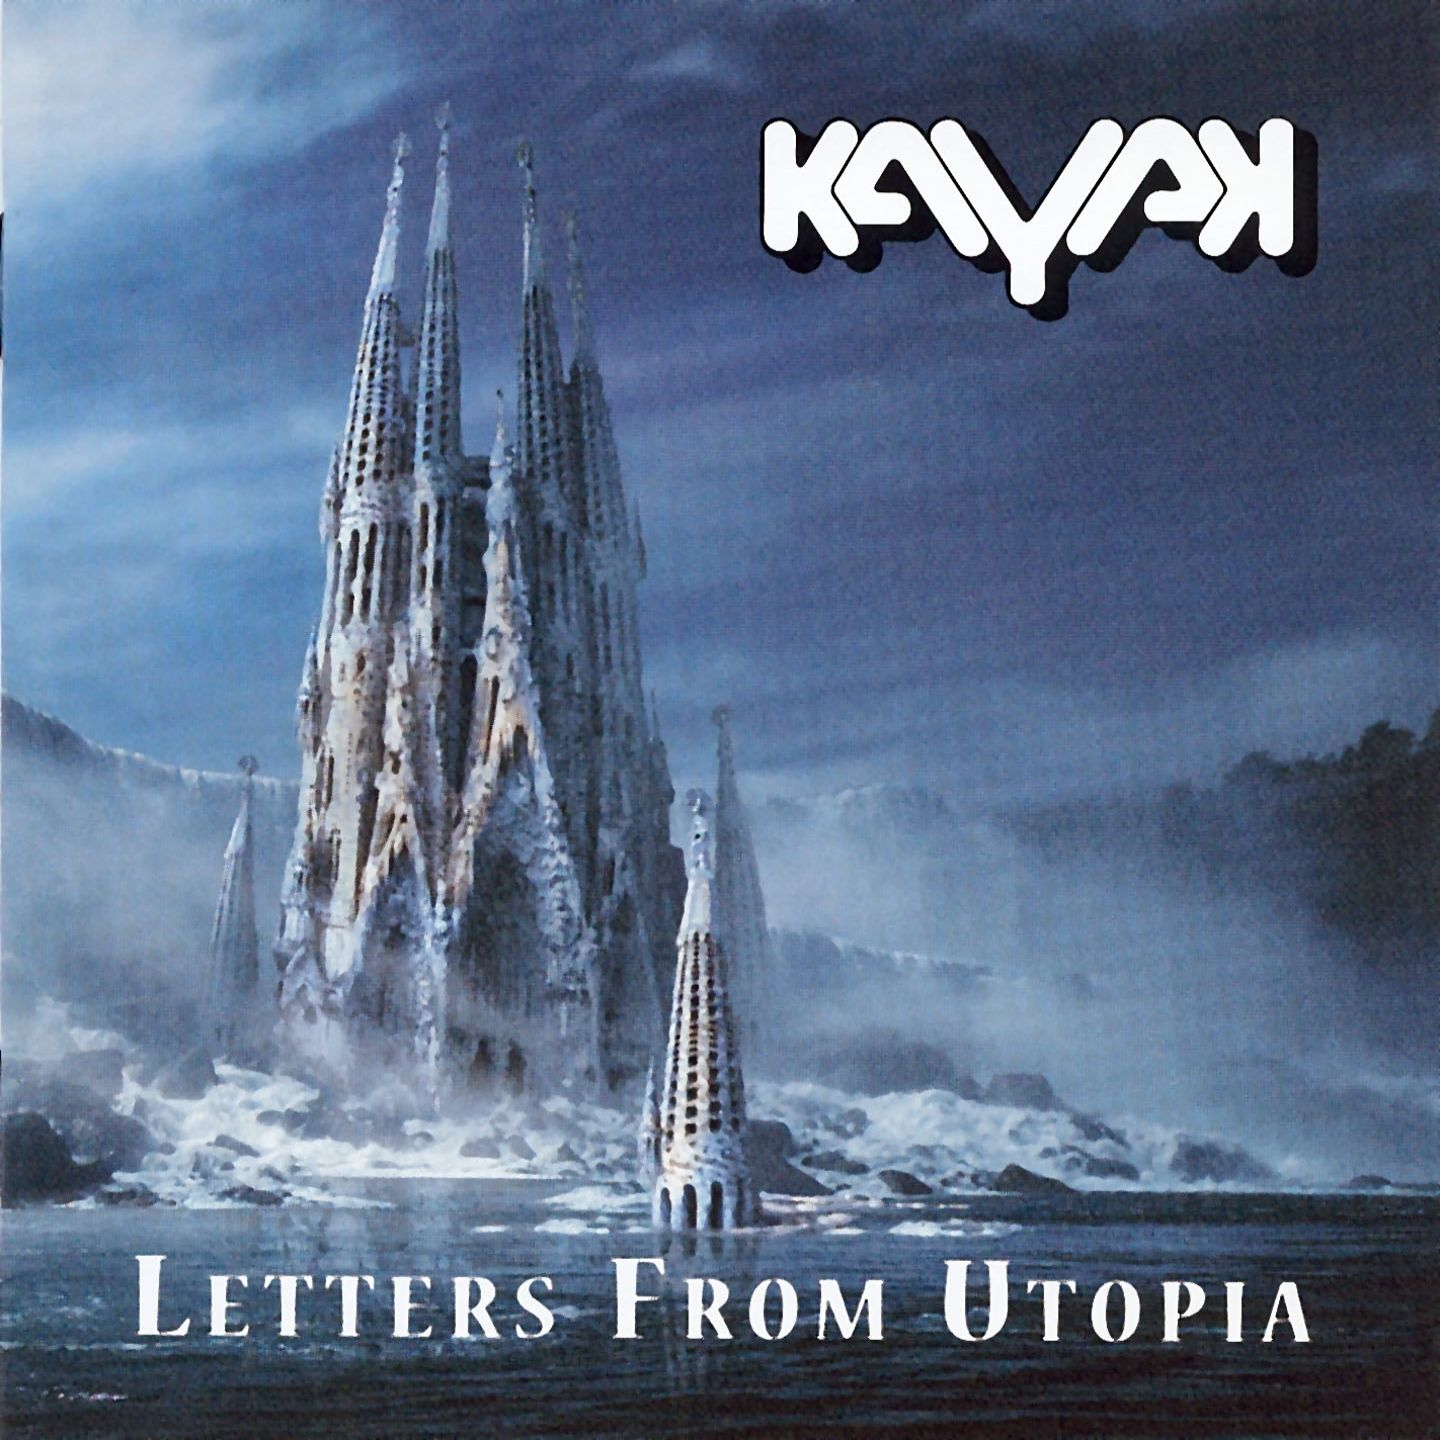 Kayak - Letters From Utopia album cover